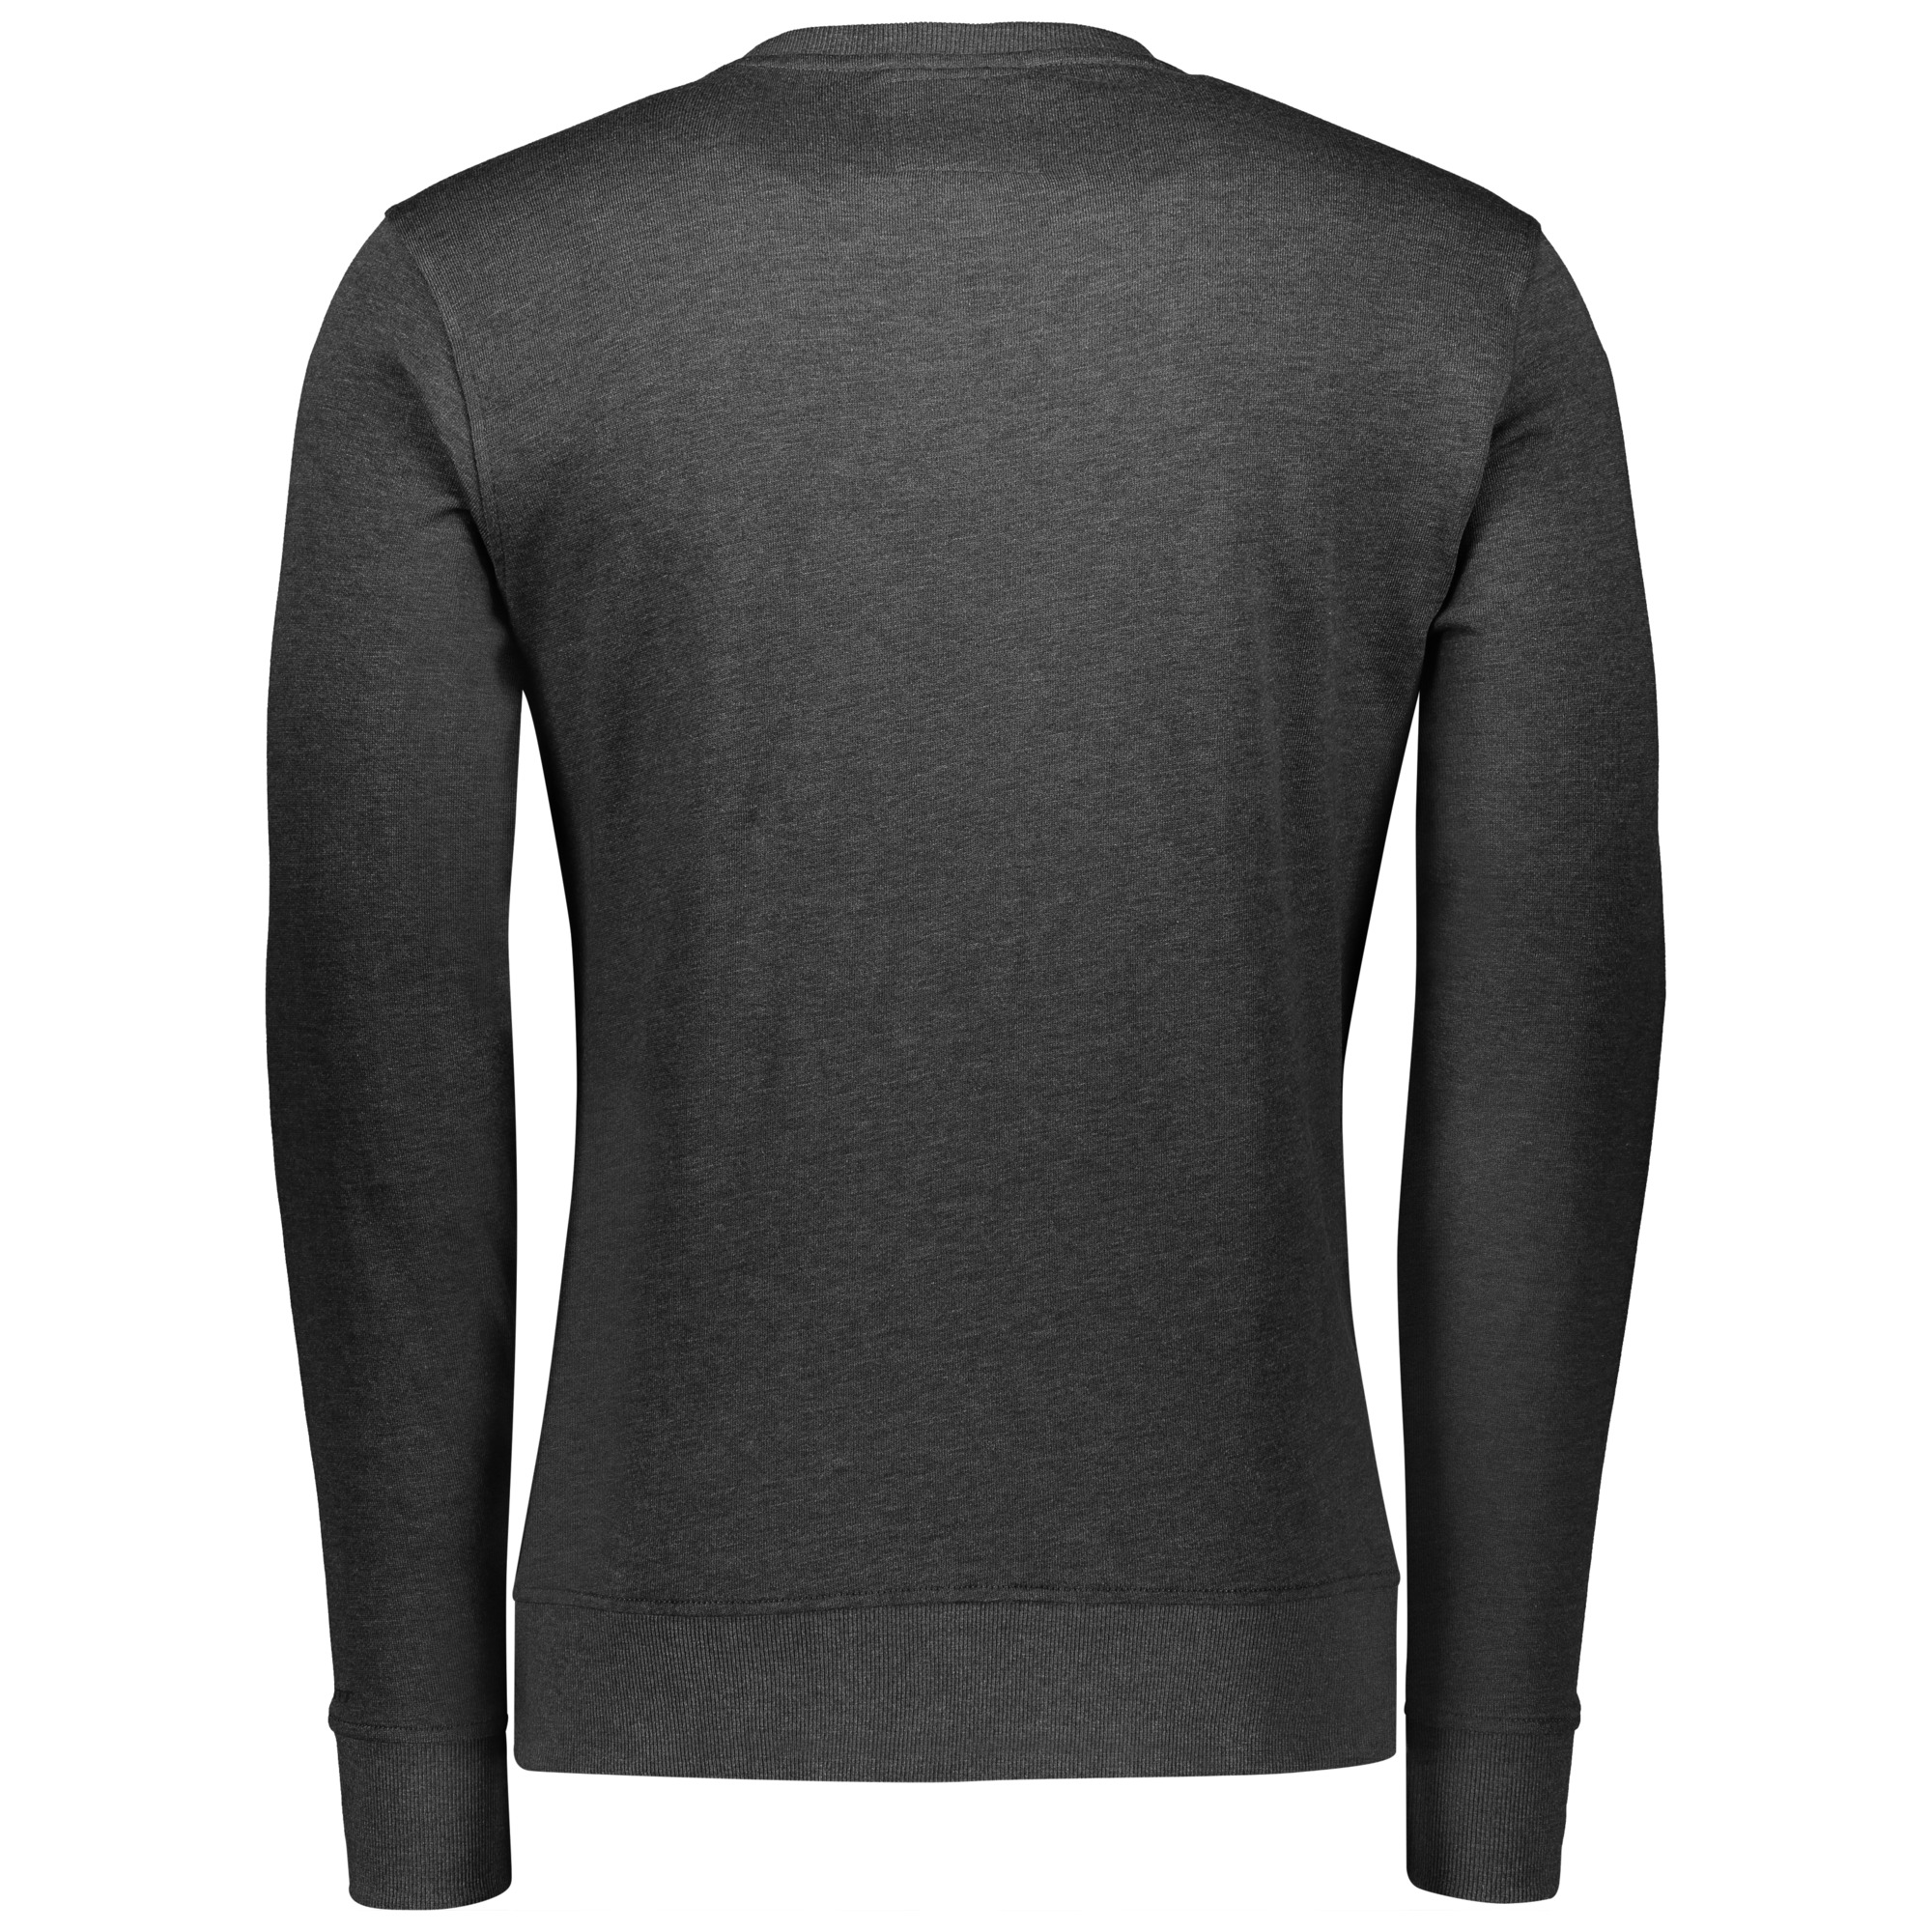 SCOTT 10 Casual l/sl Crewneck